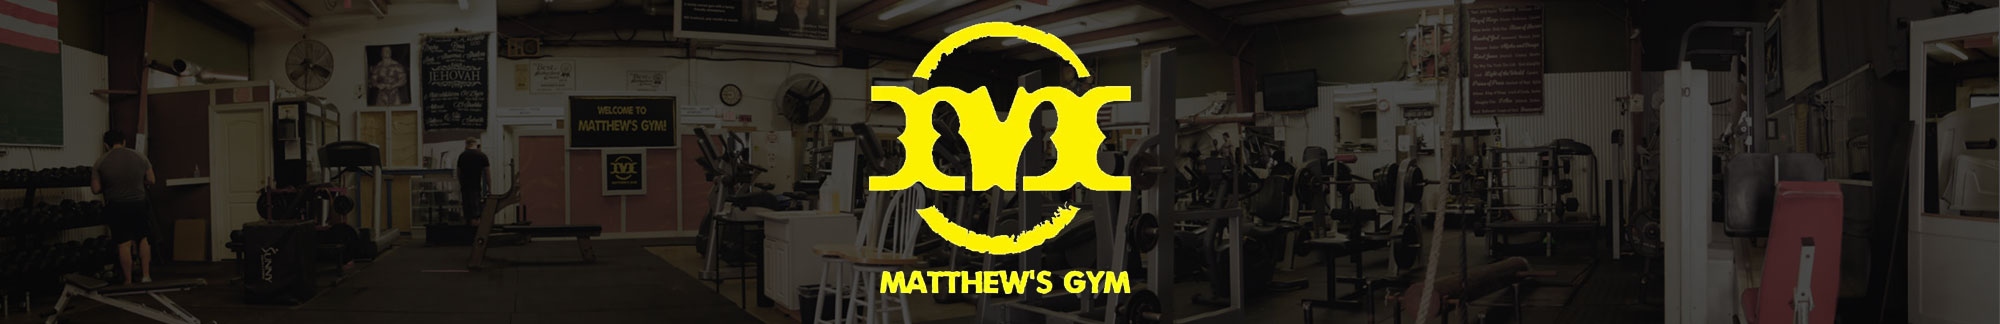 Matthews Gym – Your Local Forest City Gym